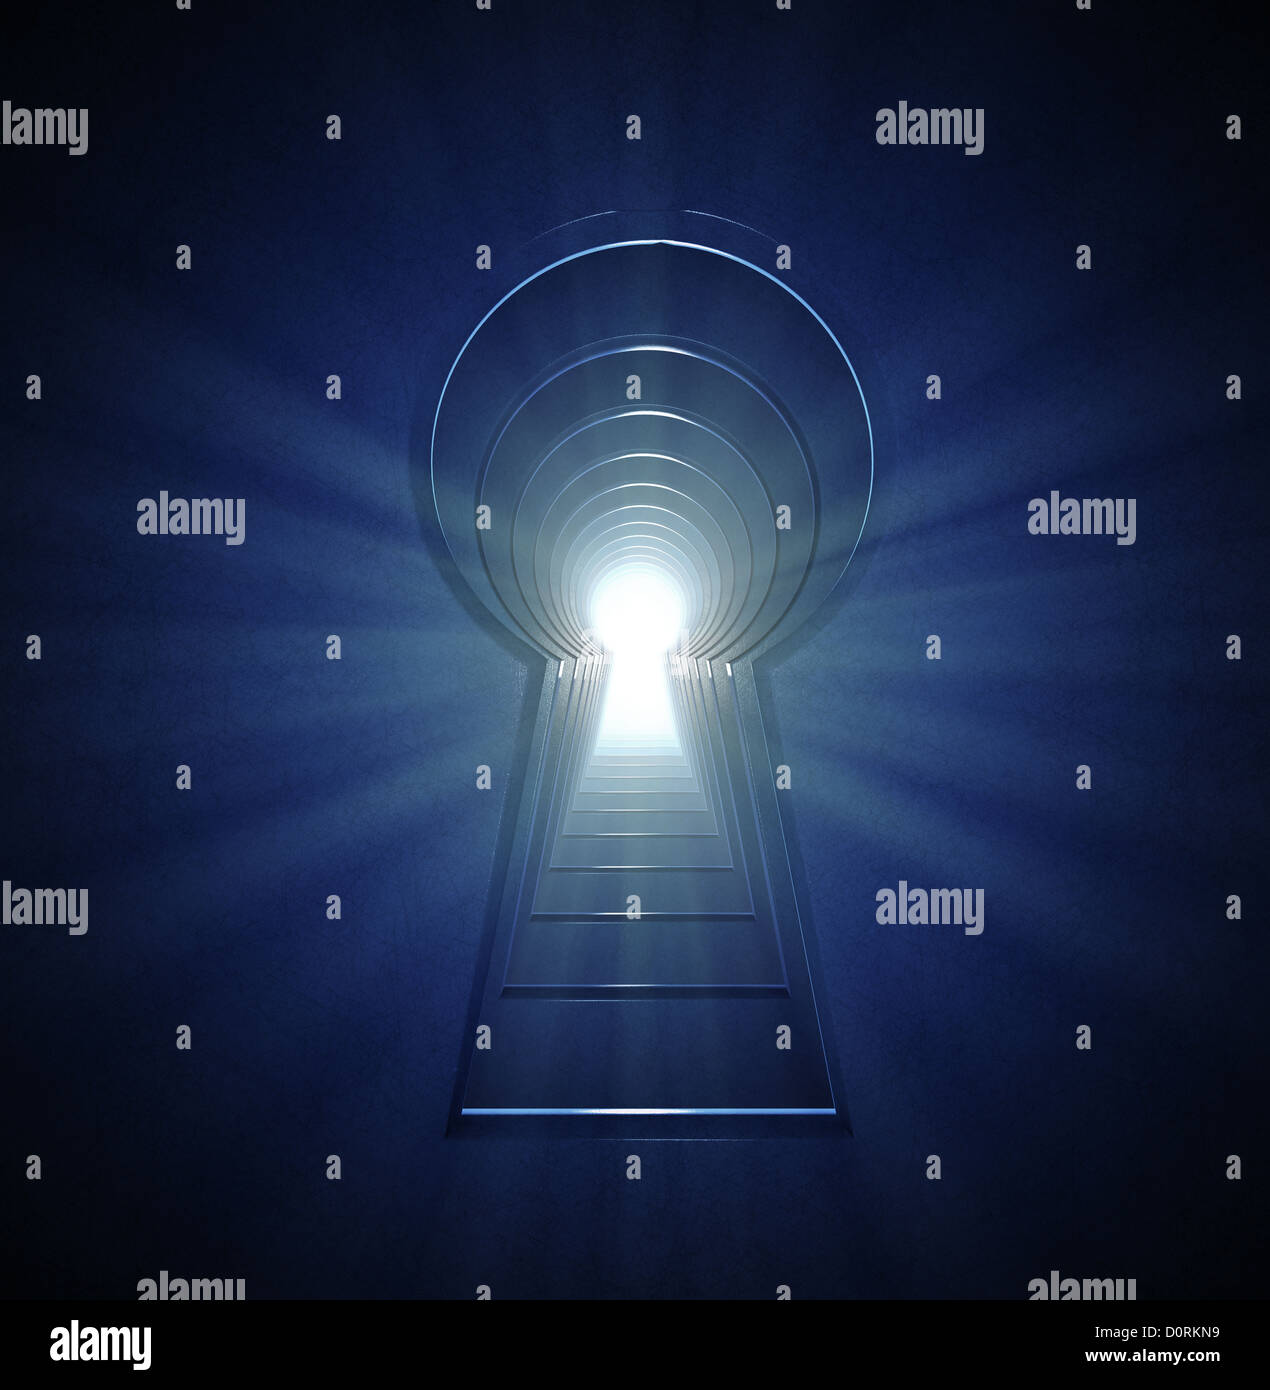 endless line of keyhole - Stock Image